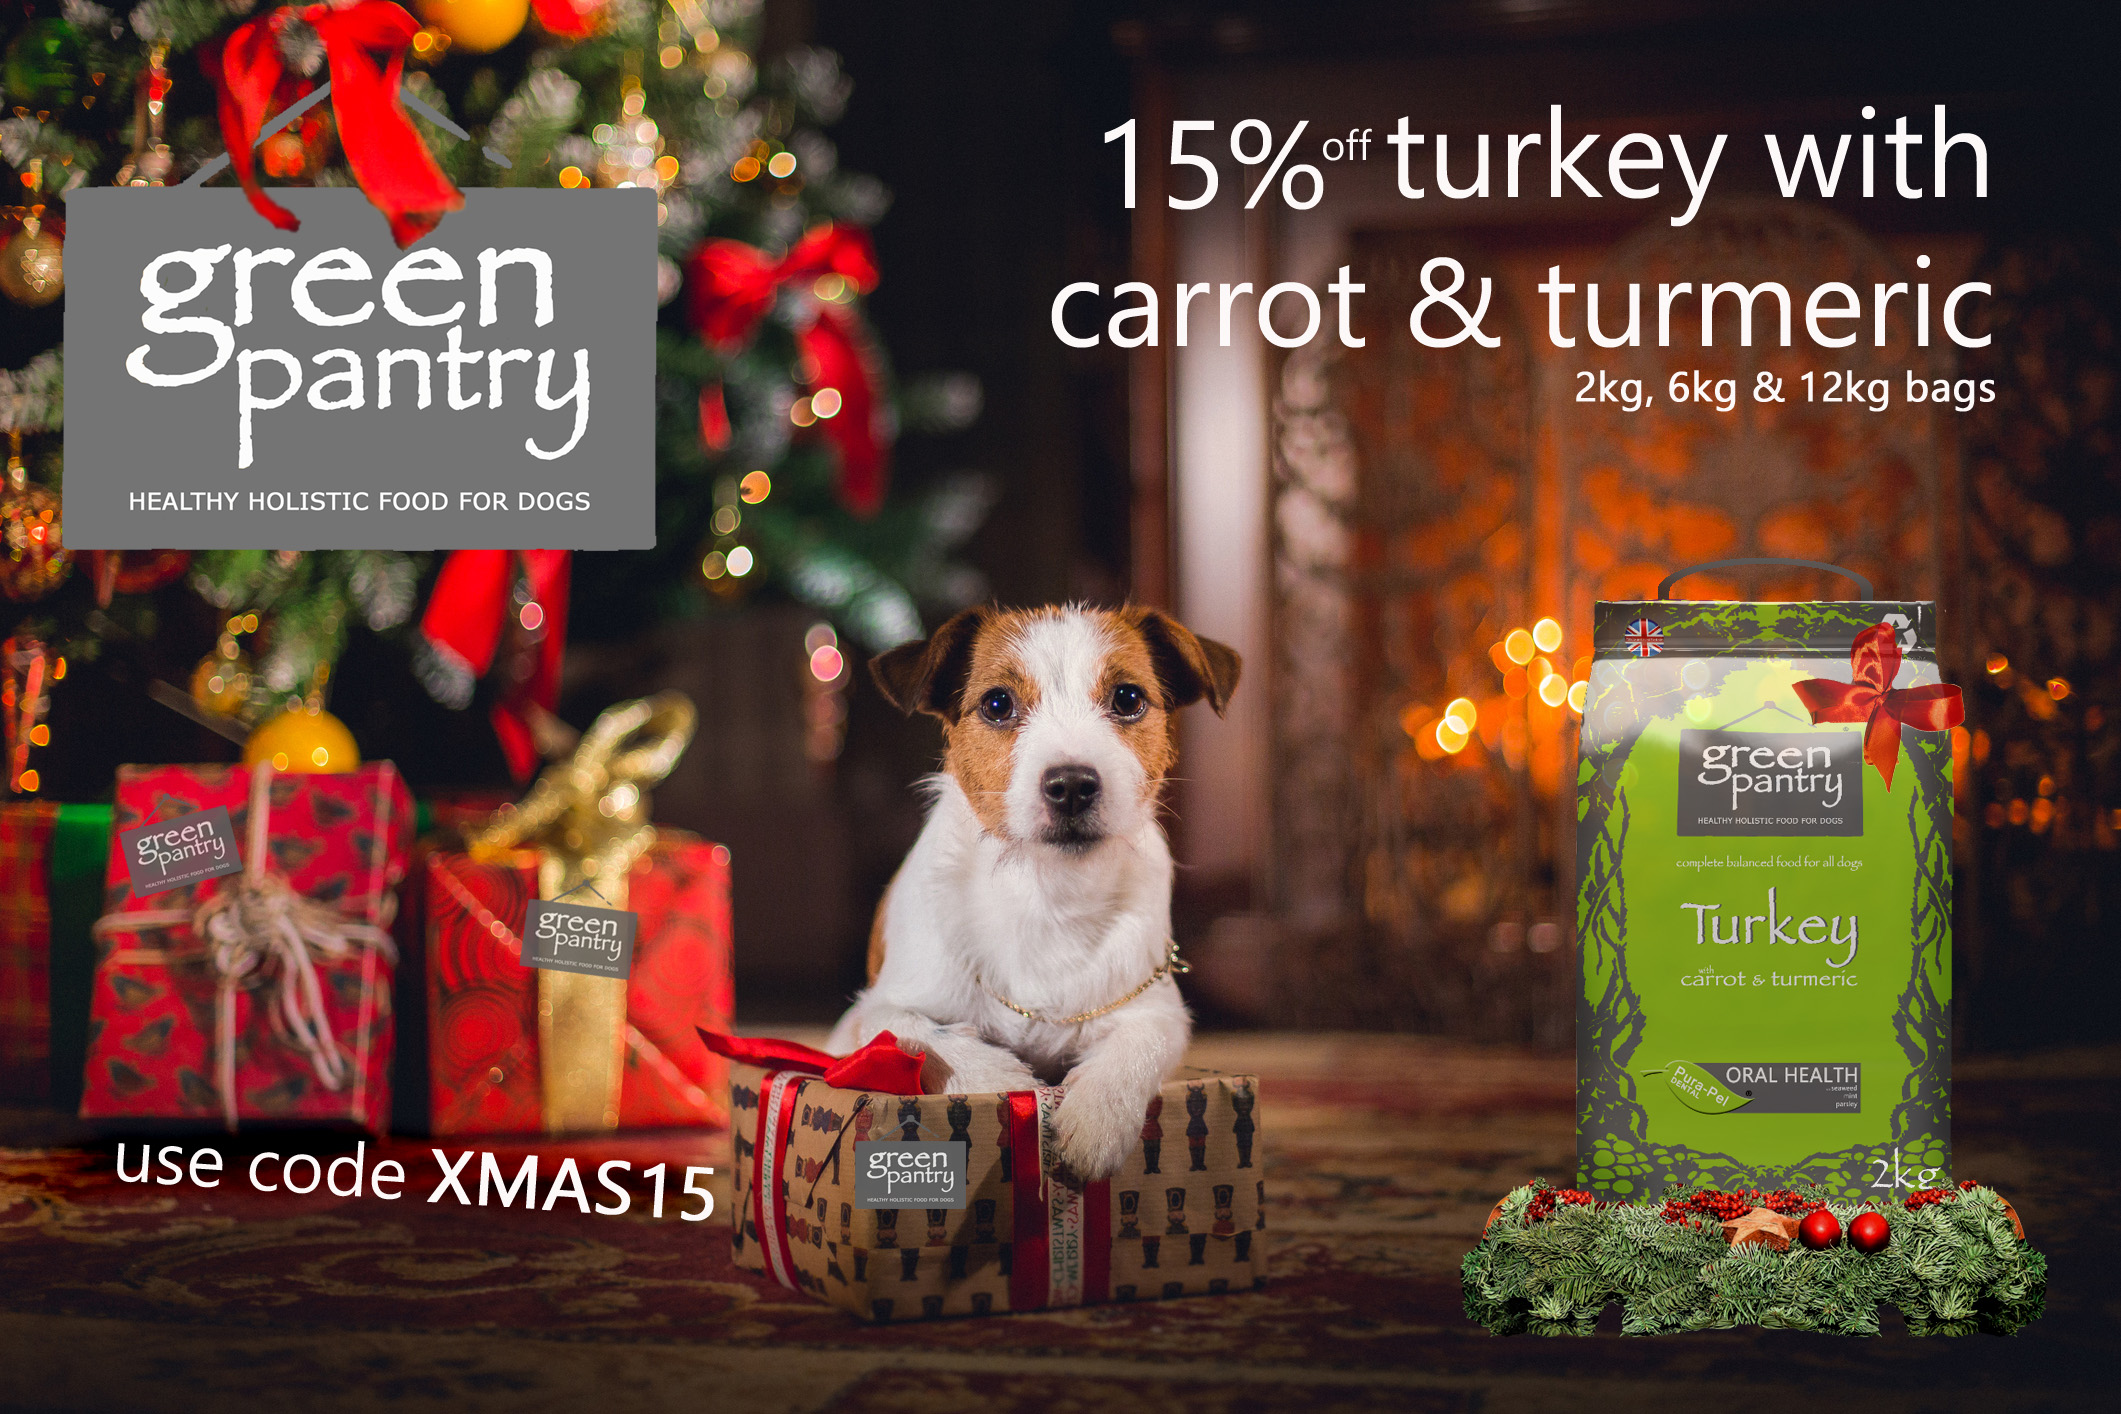 Green Pantry Turkey with Carrot & Turkey